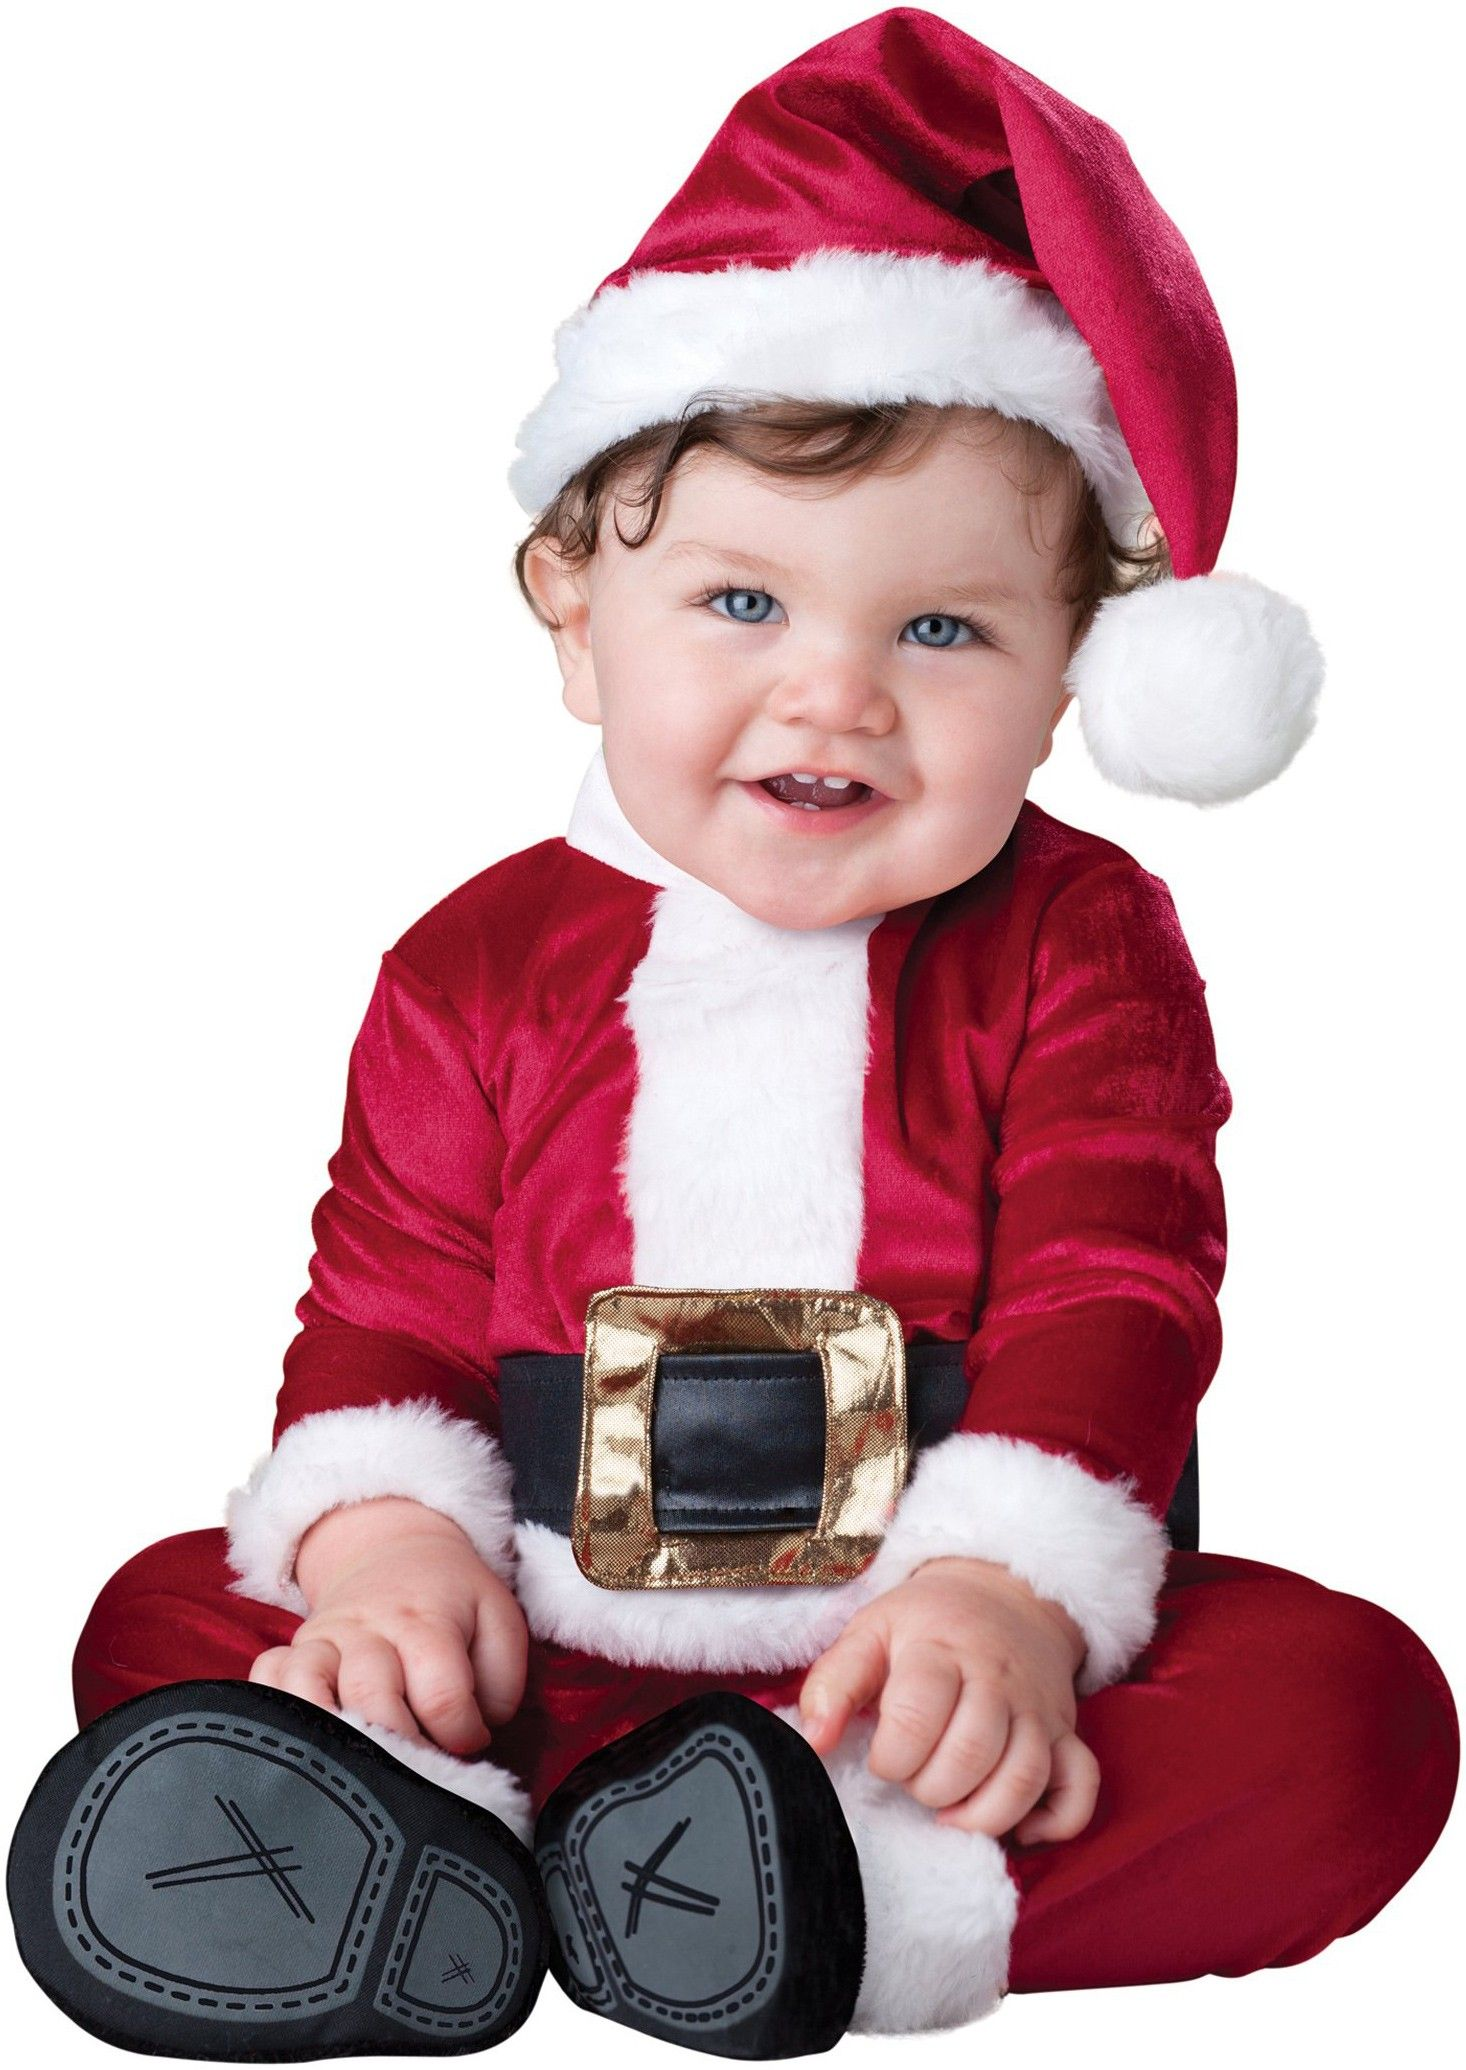 c4c95f635 Baby Santa Infant / Toddler Costume - Includes: Jumpsuit and hat. | Costumes .